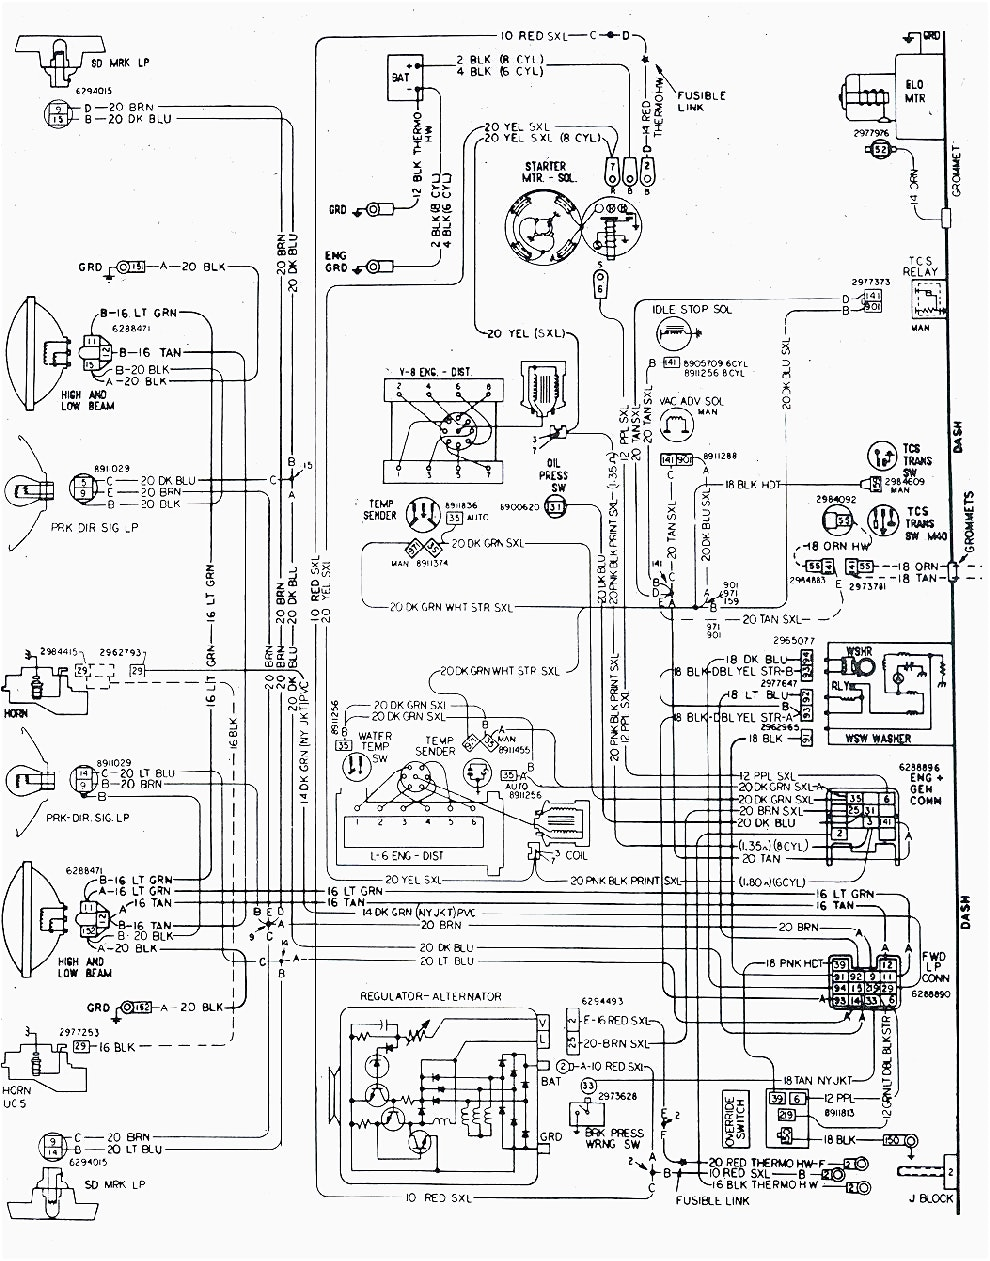 1968 Camaro Turn Signal Wiring Diagram Library Impala 69 Wire Center U2022 Rh 207 246 102 26 Electrical